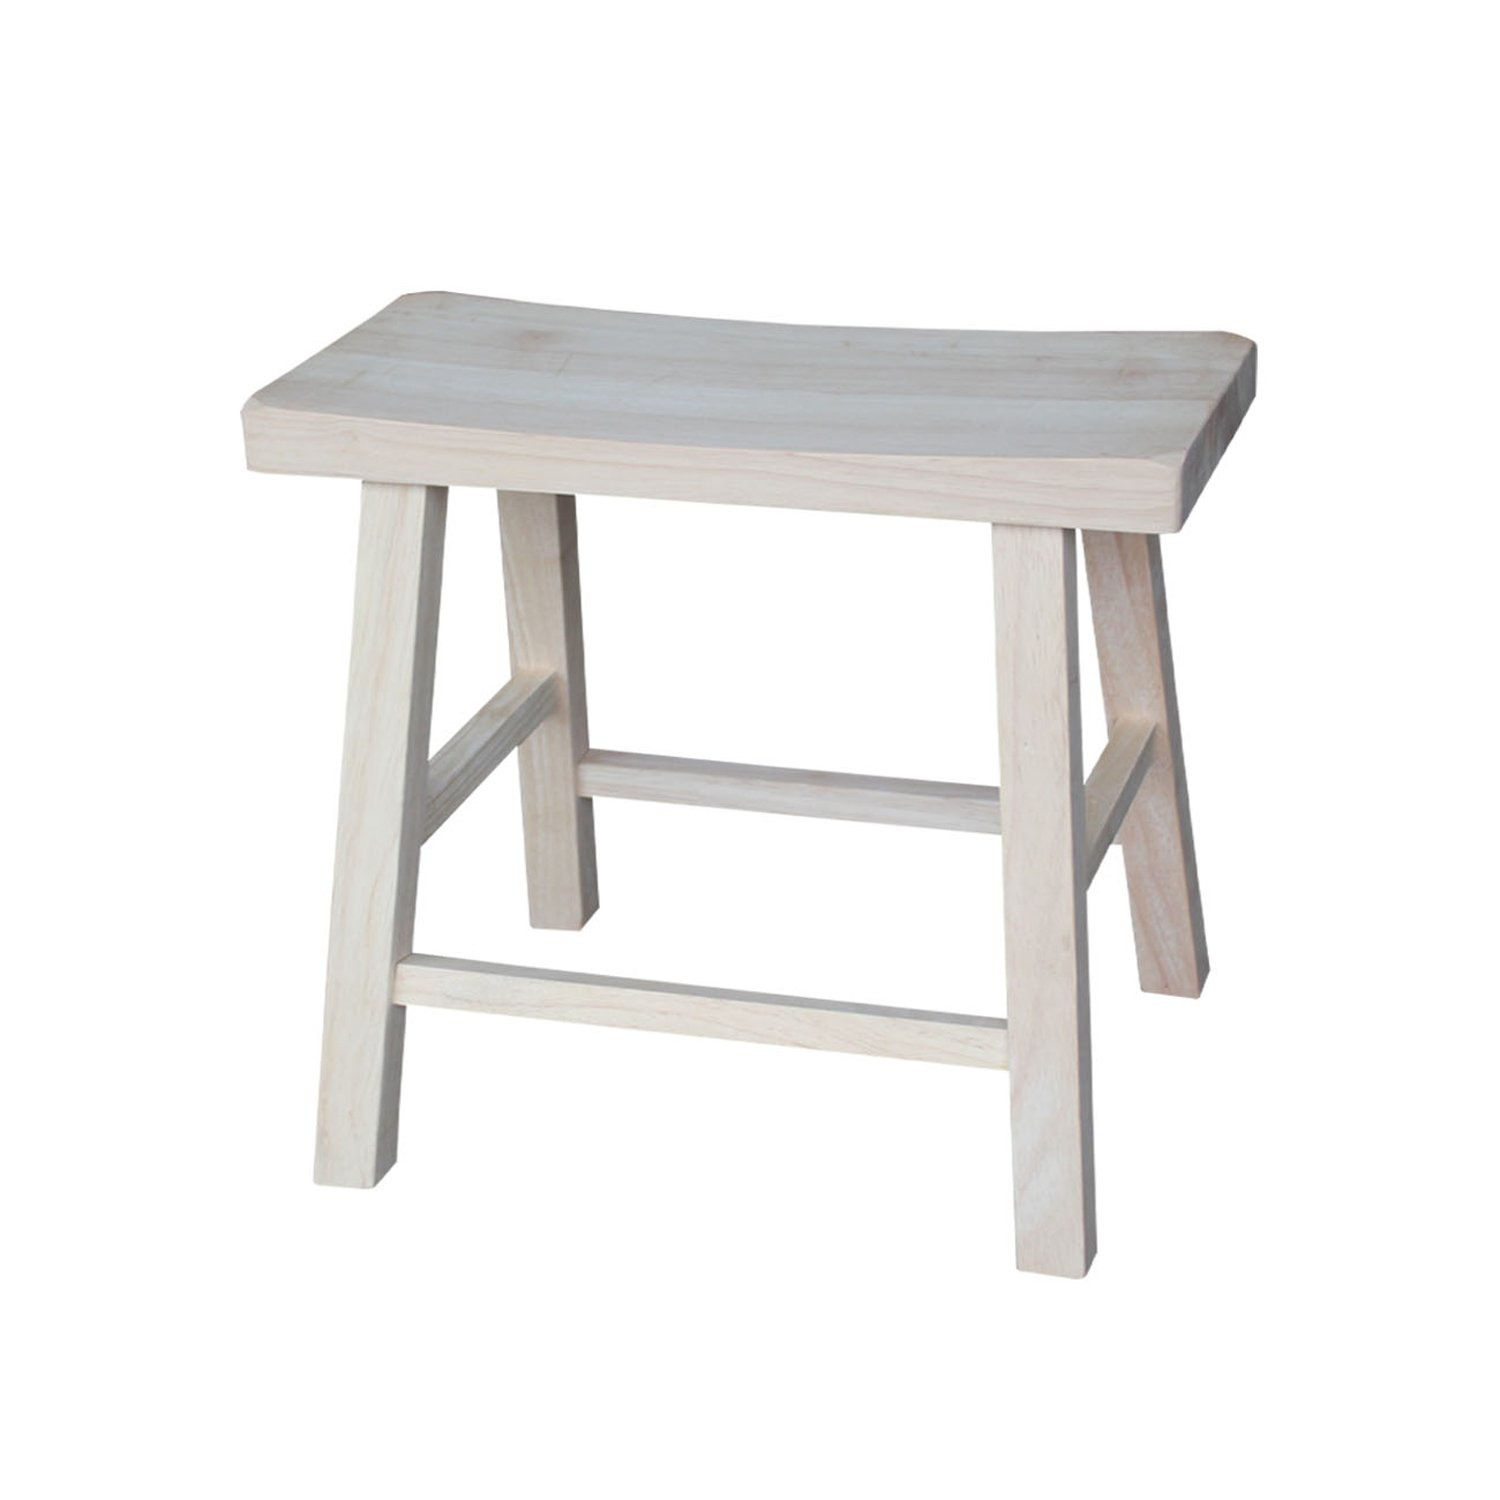 International Concepts 1S-681 18-Inch Saddle Seat Stool, Unfinished